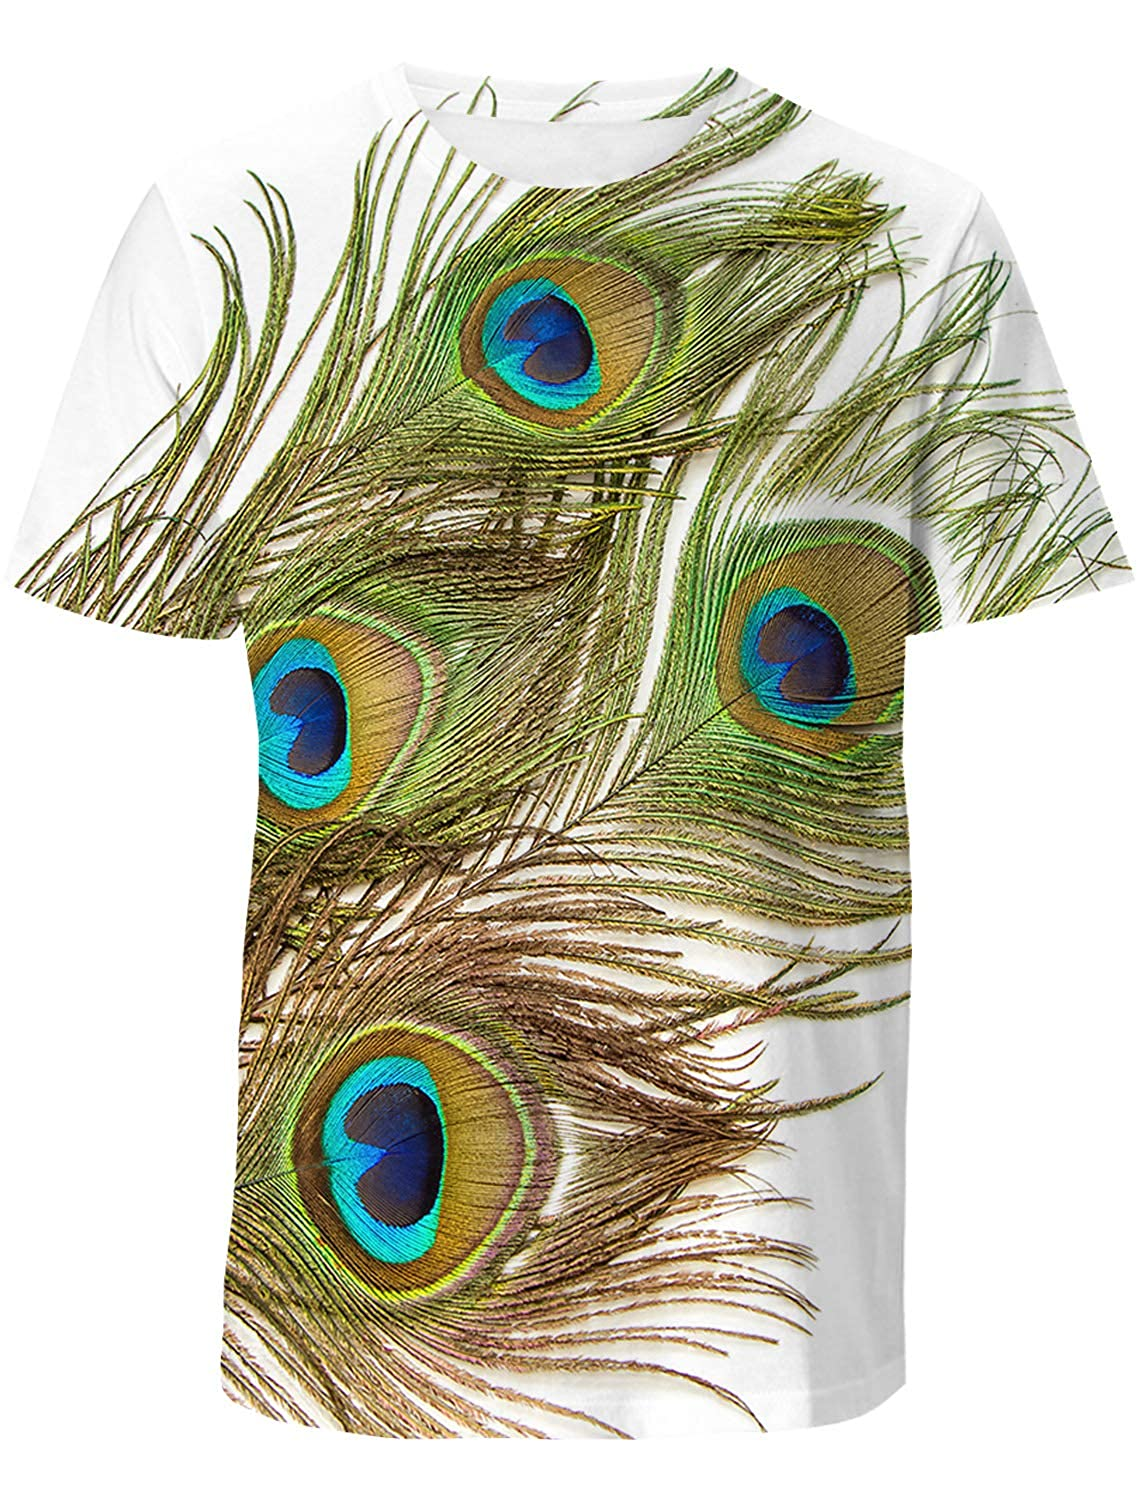 EZON-CH Mens Short-Sleeve Crewneck T-Shirt,Assorted Fashion 3D Printing Male Blouse Tee Tops,Sweet Cake for Youth,